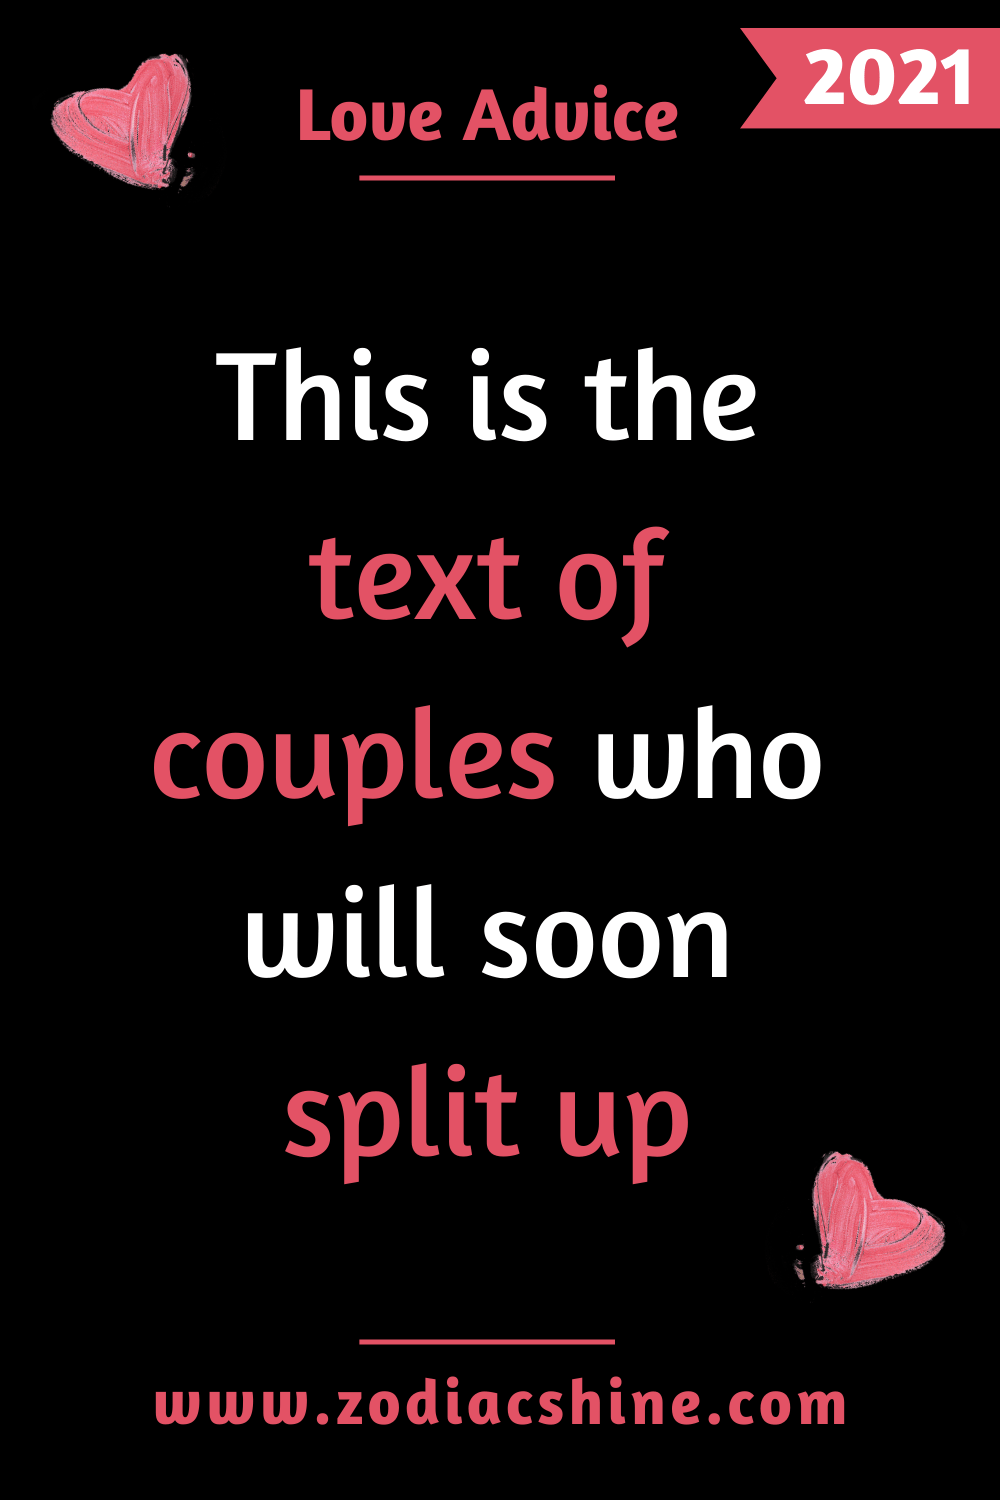 This is the text of couples who will soon split up